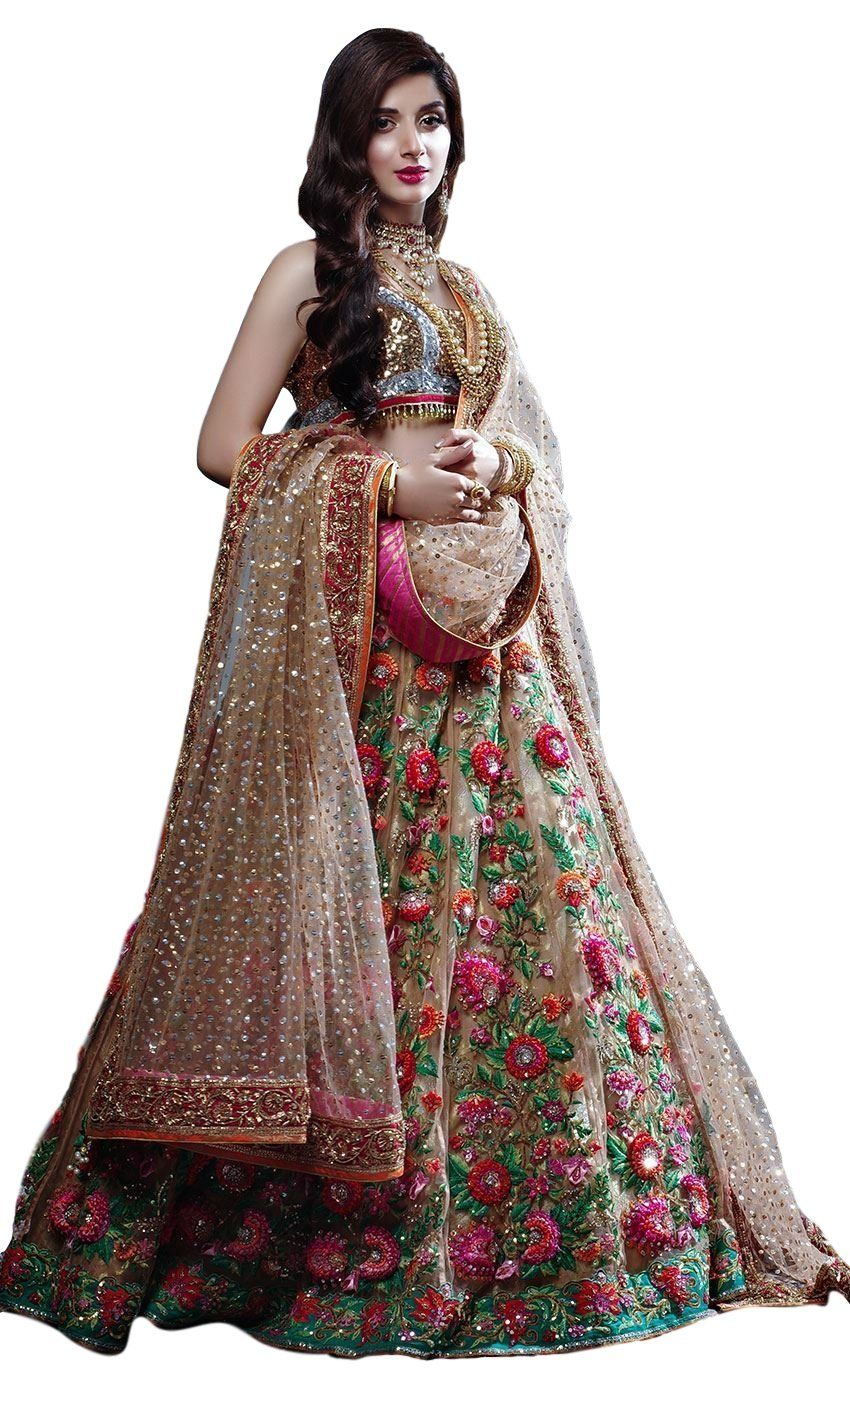 72afb90756 Champagne Color Wedding Lehenga with Floral Embroidery by Panache Haute  Couture